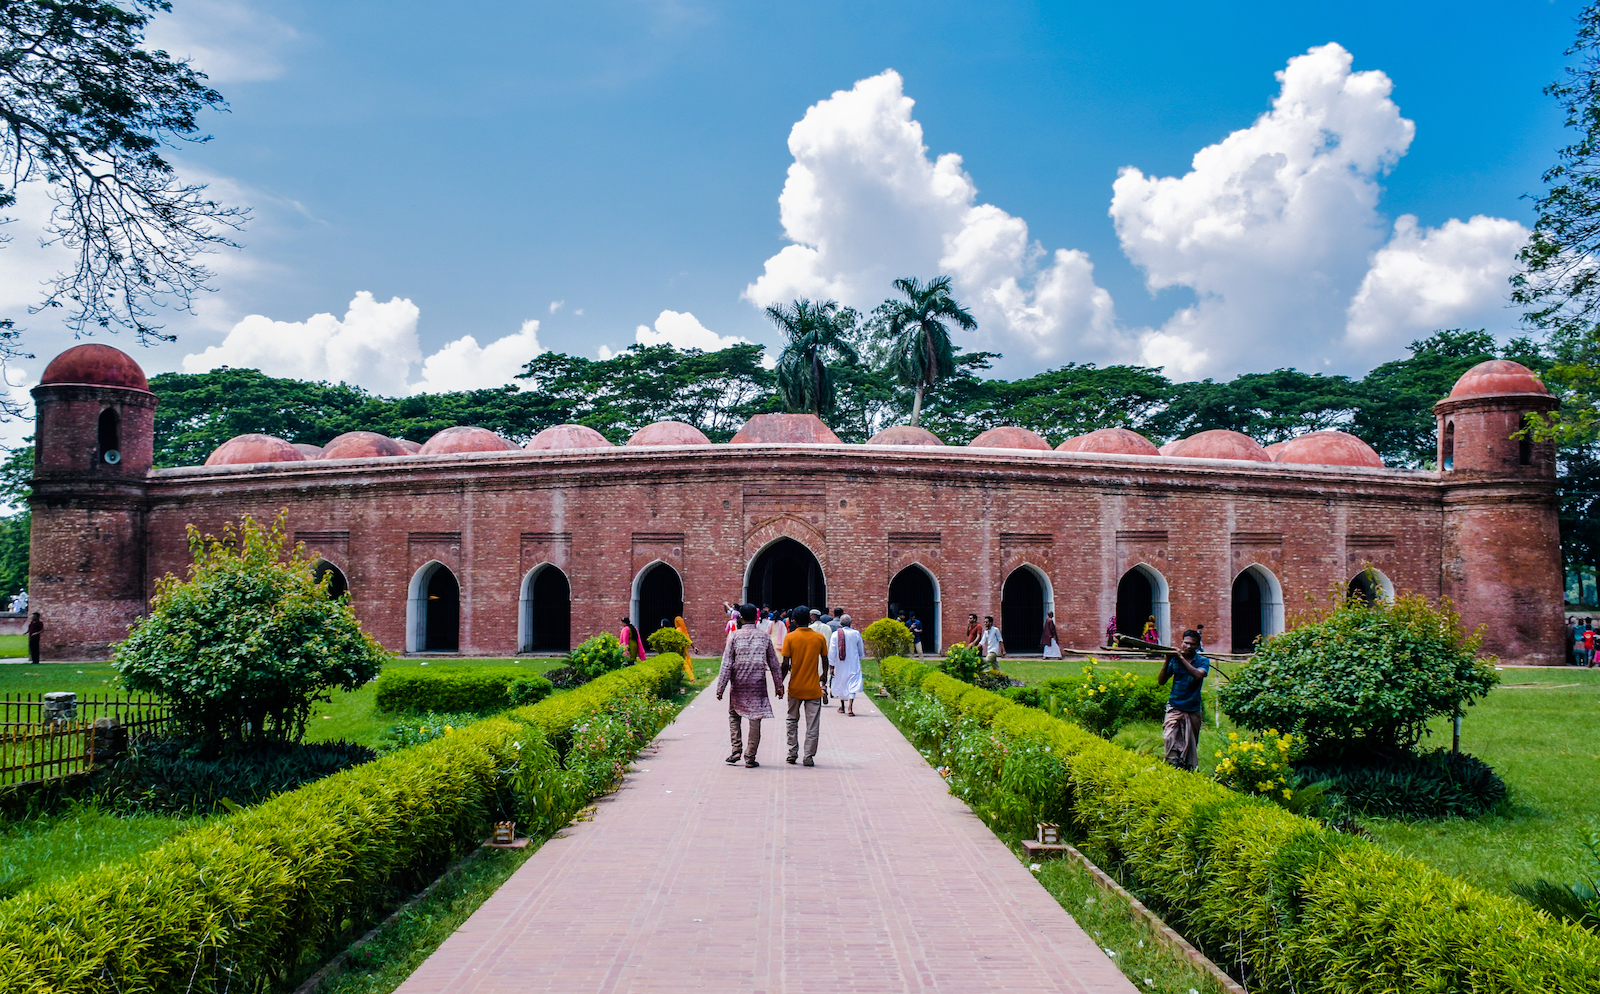 Historical mosque in Bagerhat, Bangladesh